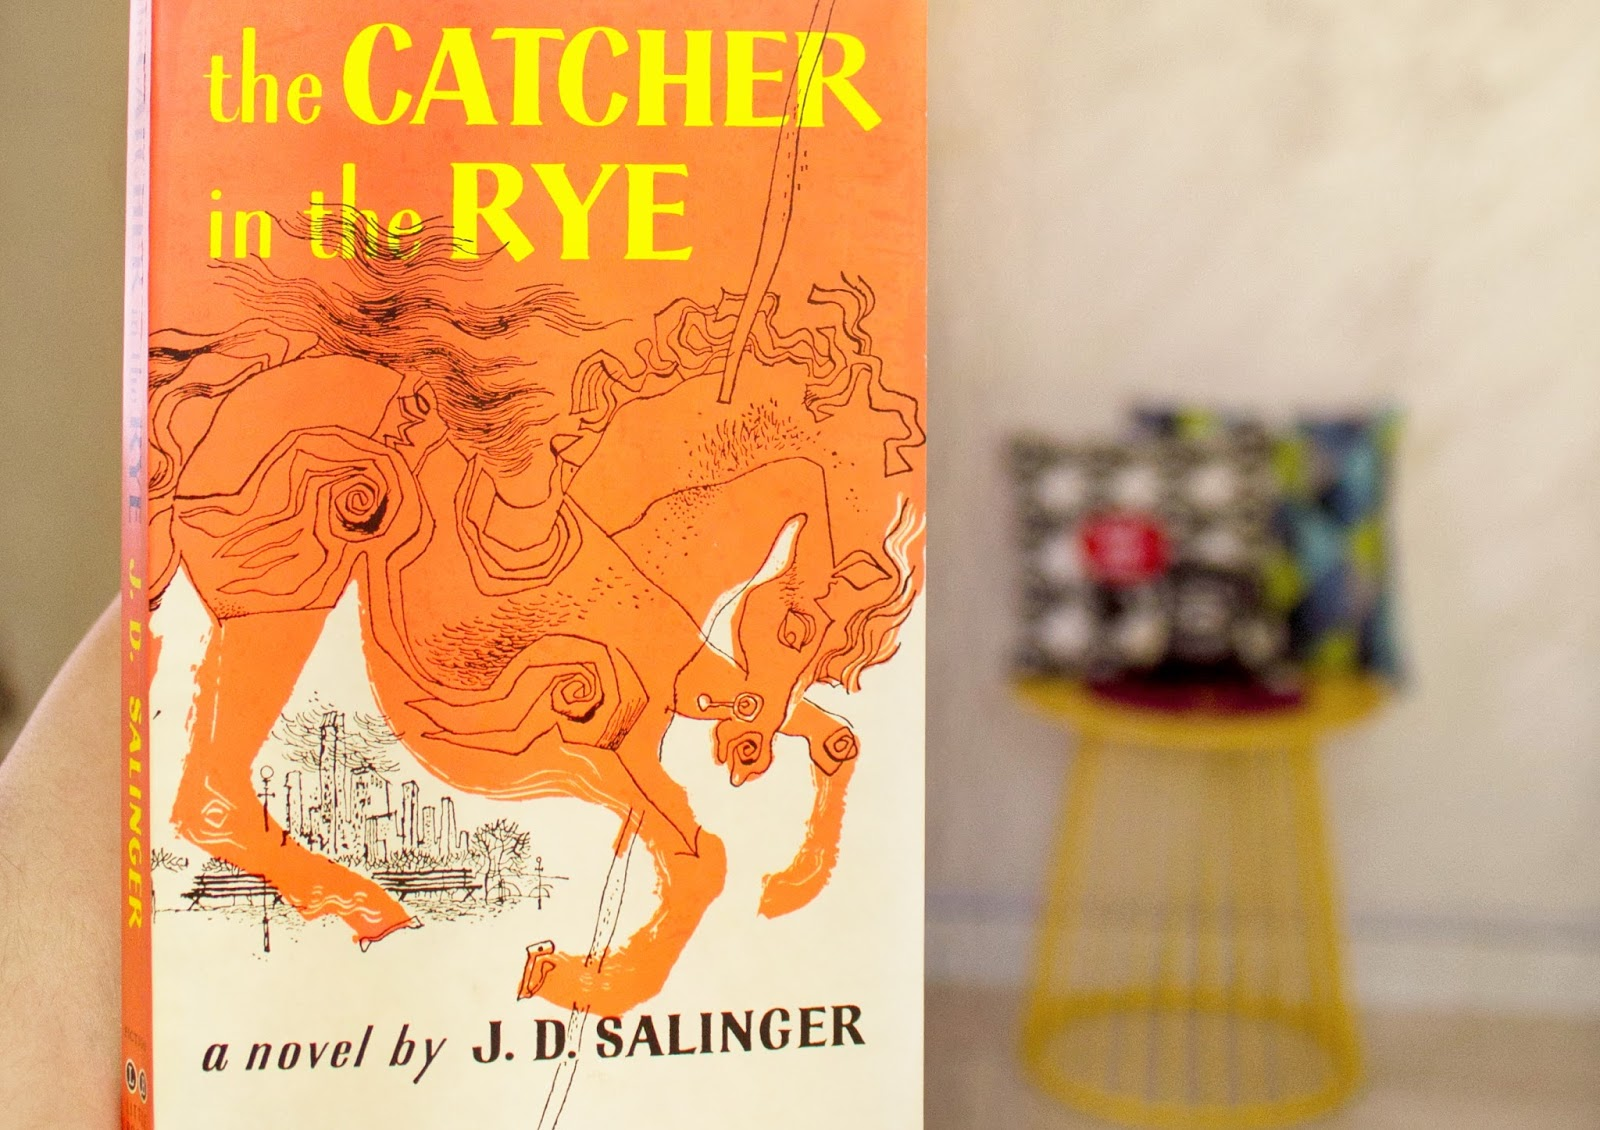 a book review of the catcher in the rye by j d salinger